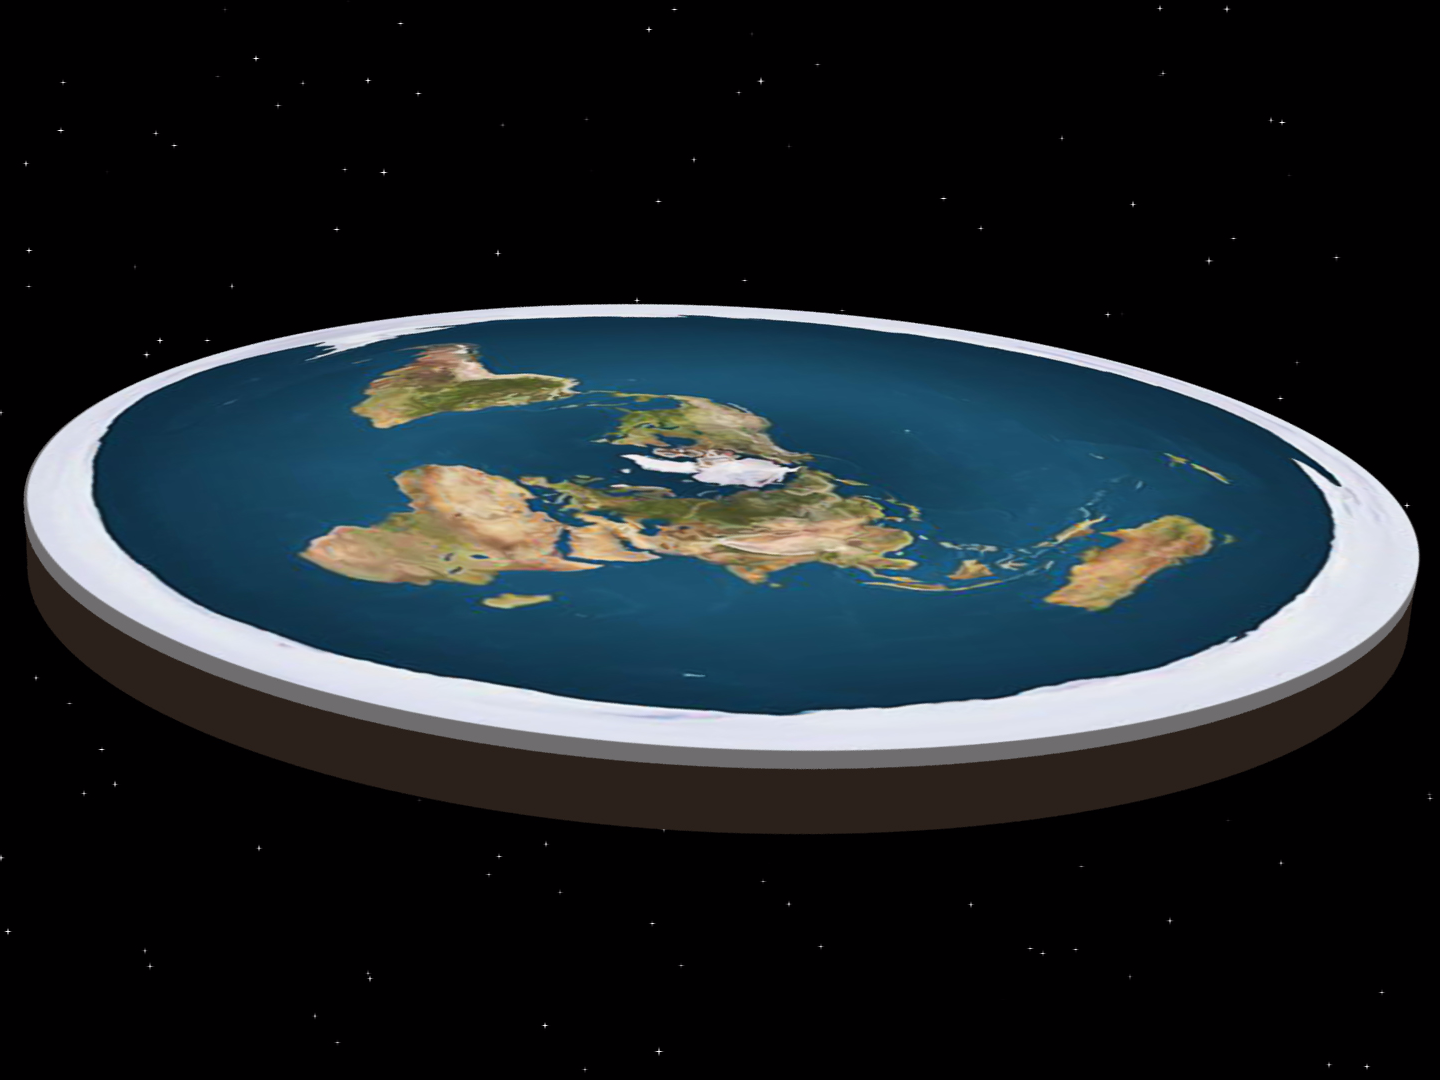 The Earth is Flat: Conclusive Evidence